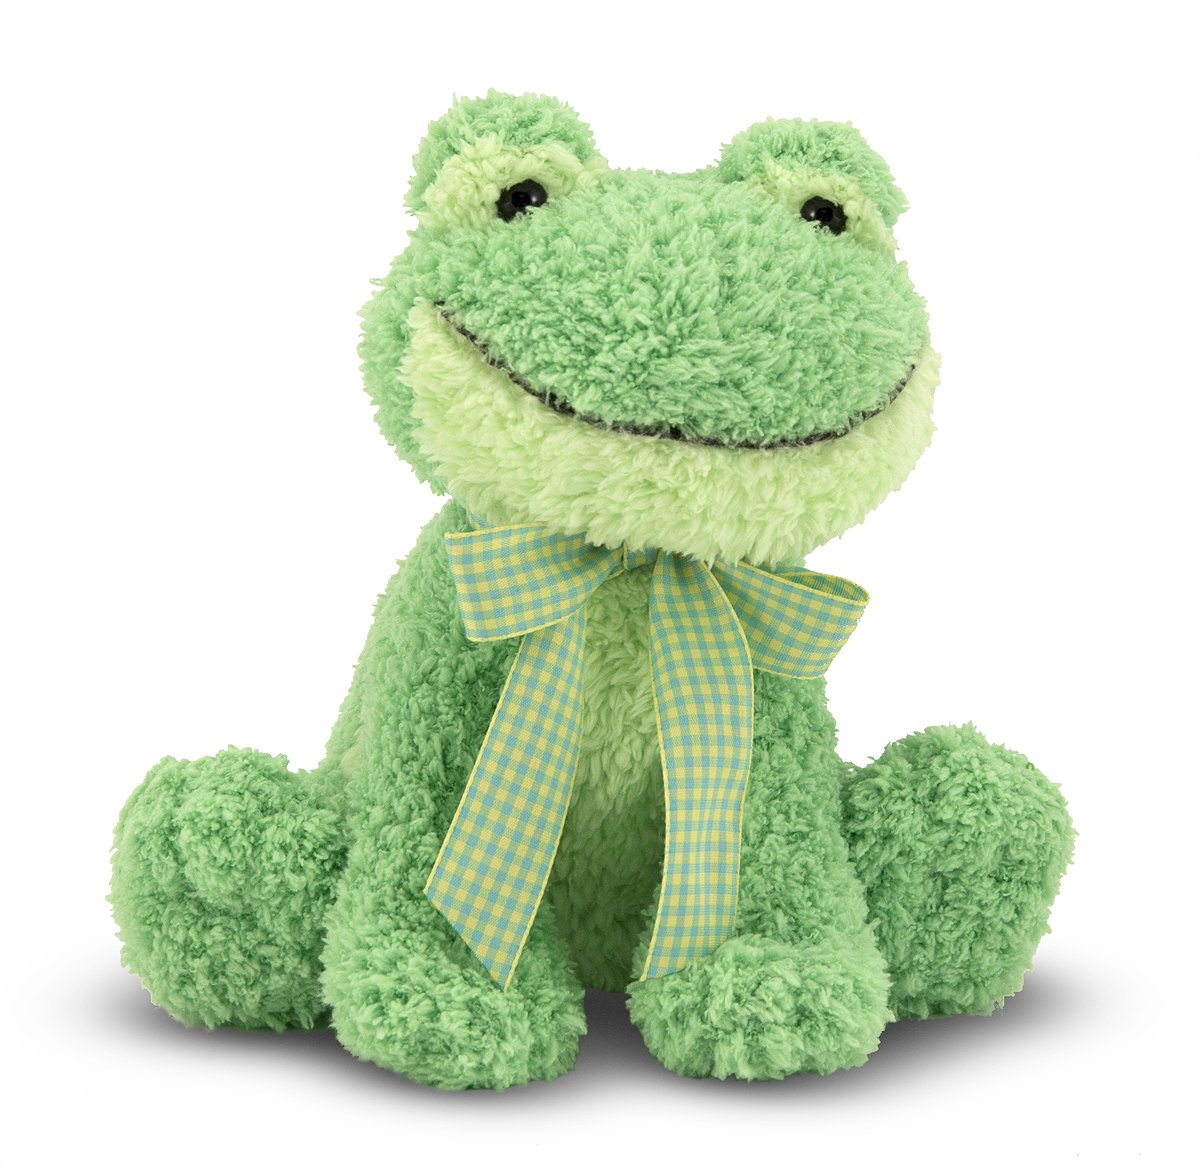 Melissa & Doug Princess Soft Toys Meadow Medley Froggy Stuffed Animal With Ribbit Sound Effect 7404